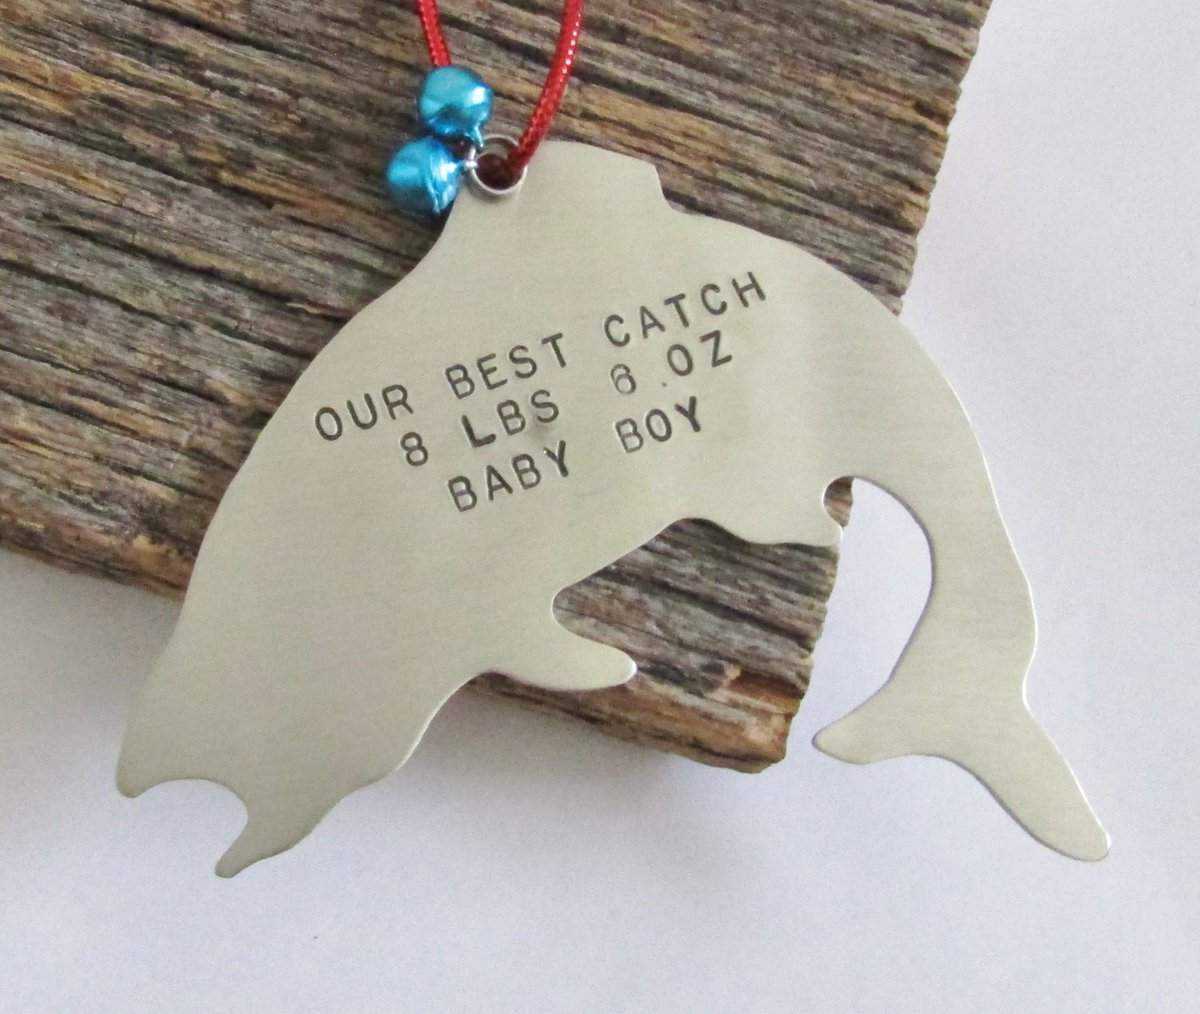 Personalized Christmas Ornament Fishing Ornament New Baby Ornament Baby's 1st Christmas Ornament Baby Weight Baby Stats Baby Name Ornaments http://tuppu.net/48fe49d2 #Shopify #CandTCustomLures #Home_decor